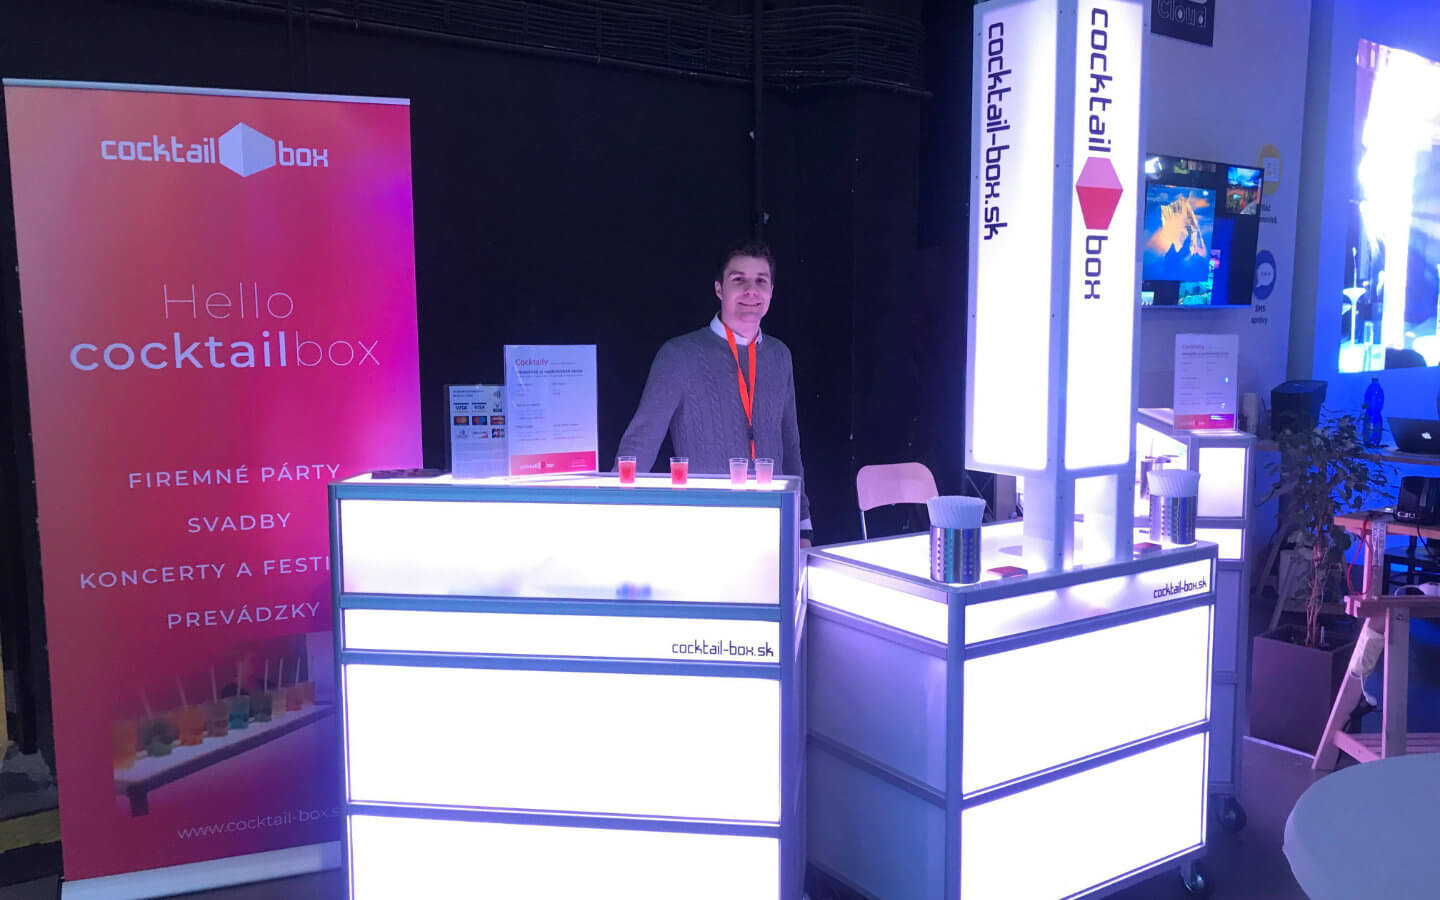 Cocktail-box - Event Expo 2018 referencia